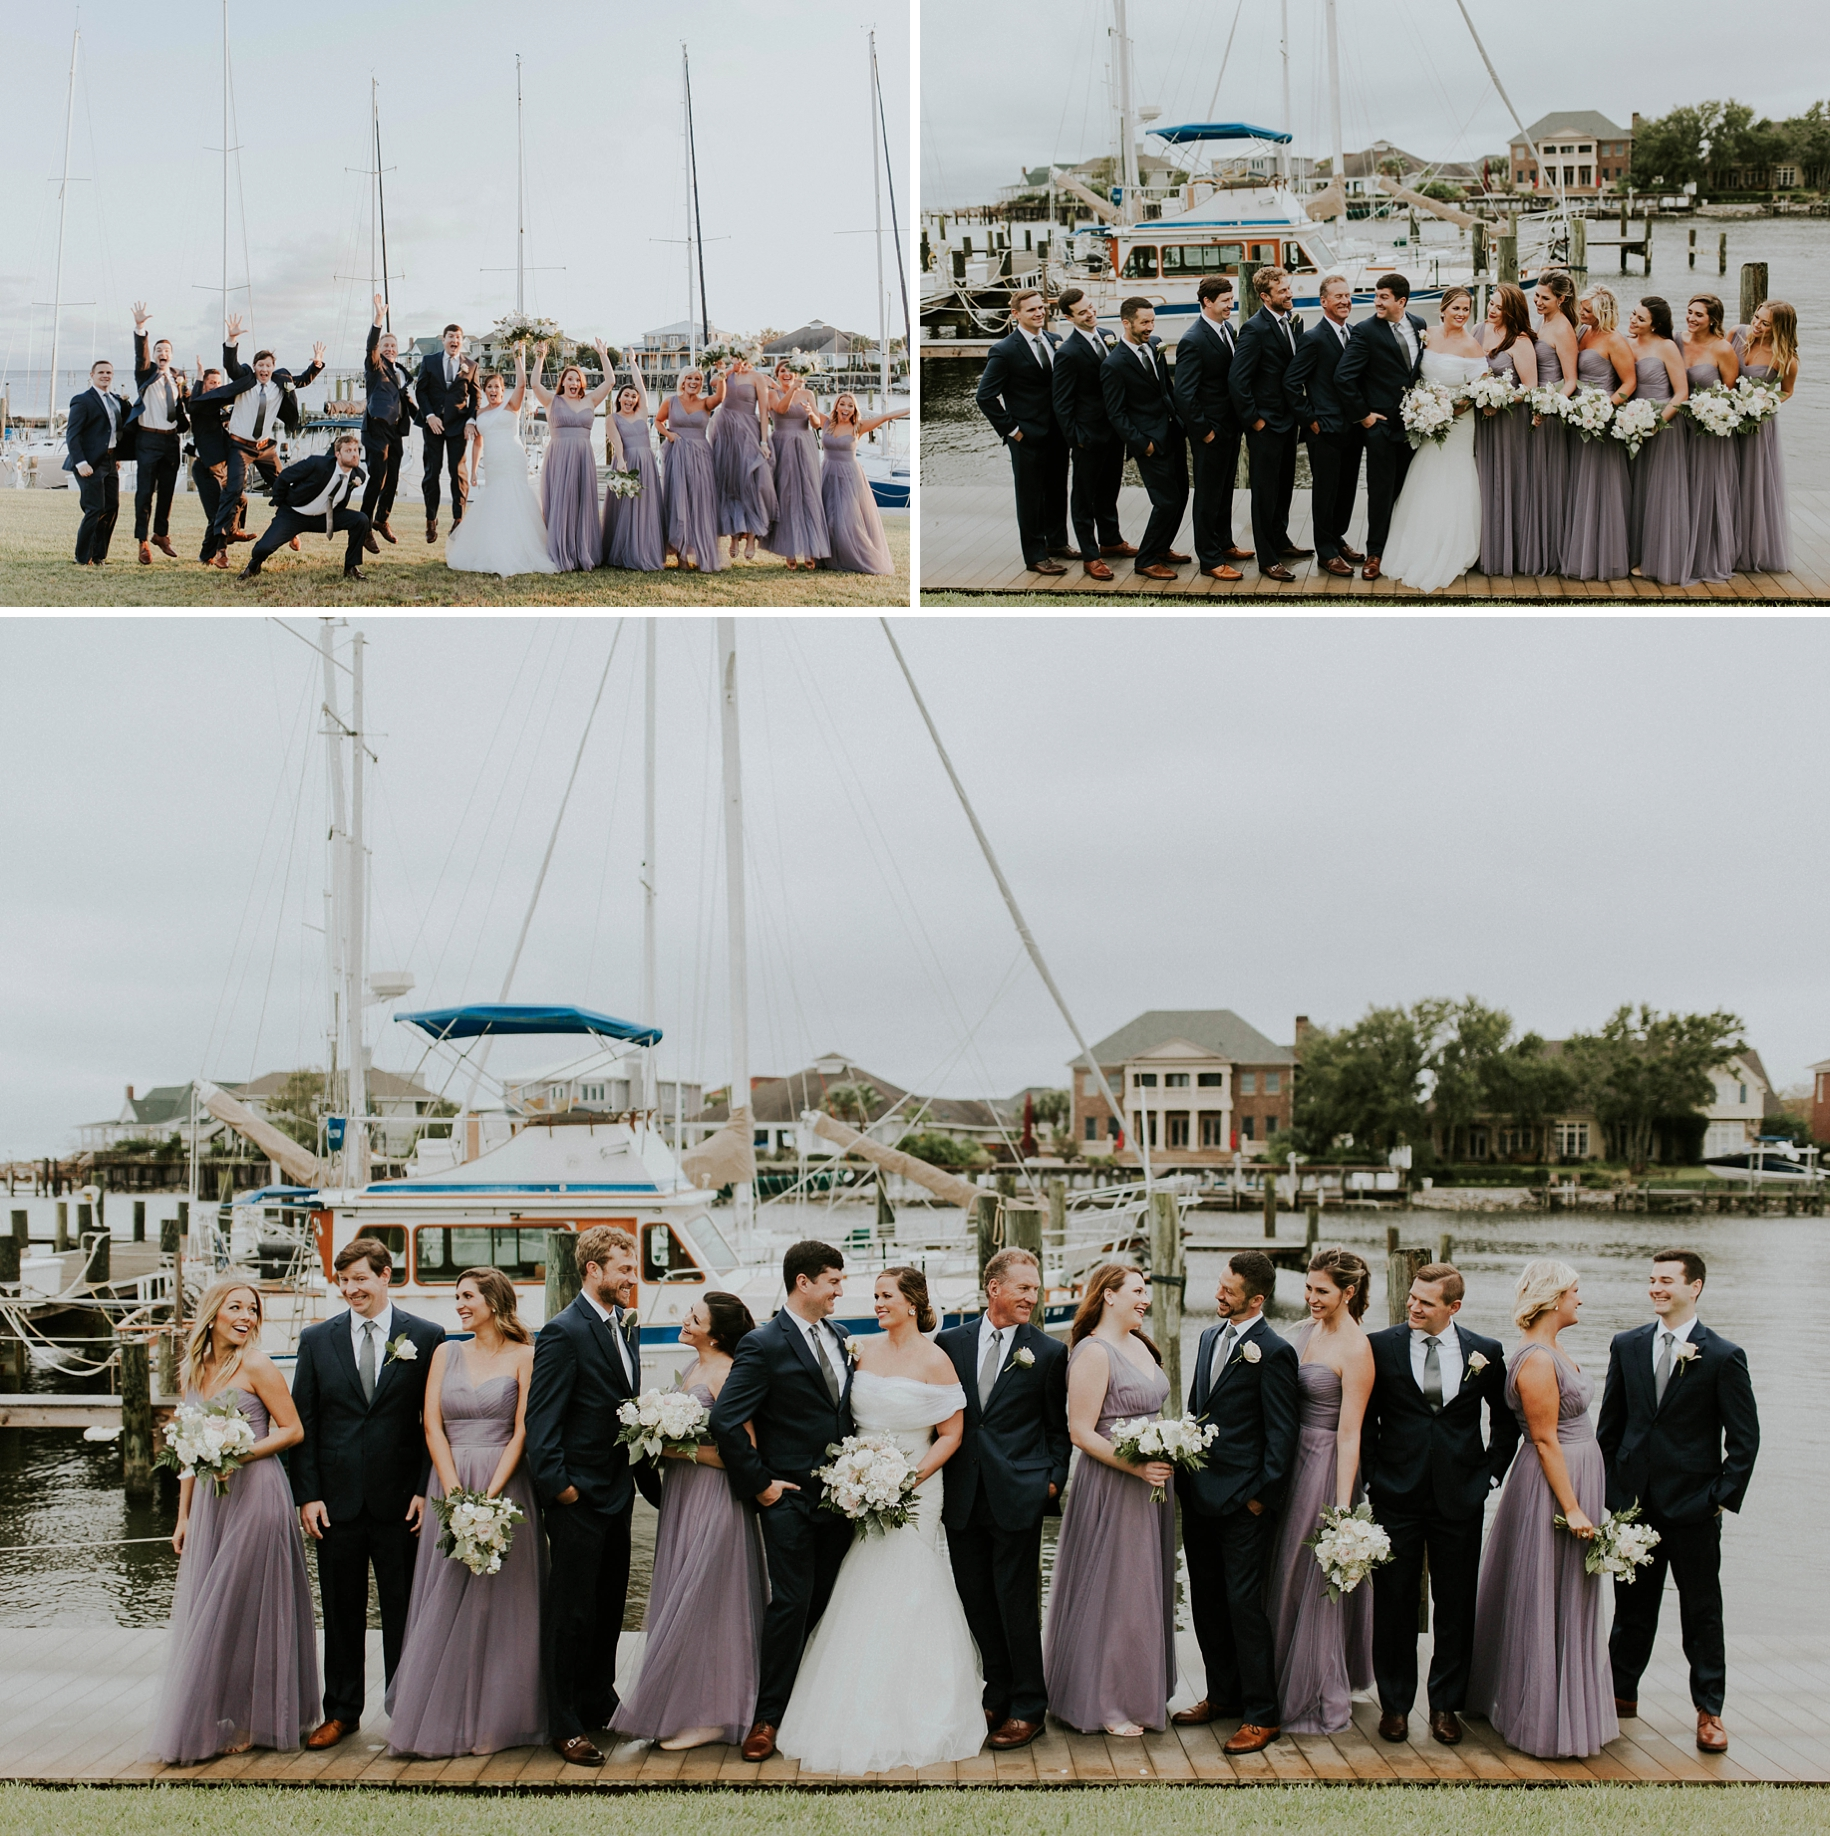 pensacola_yacht_club_wedding_photos_0013.jpg